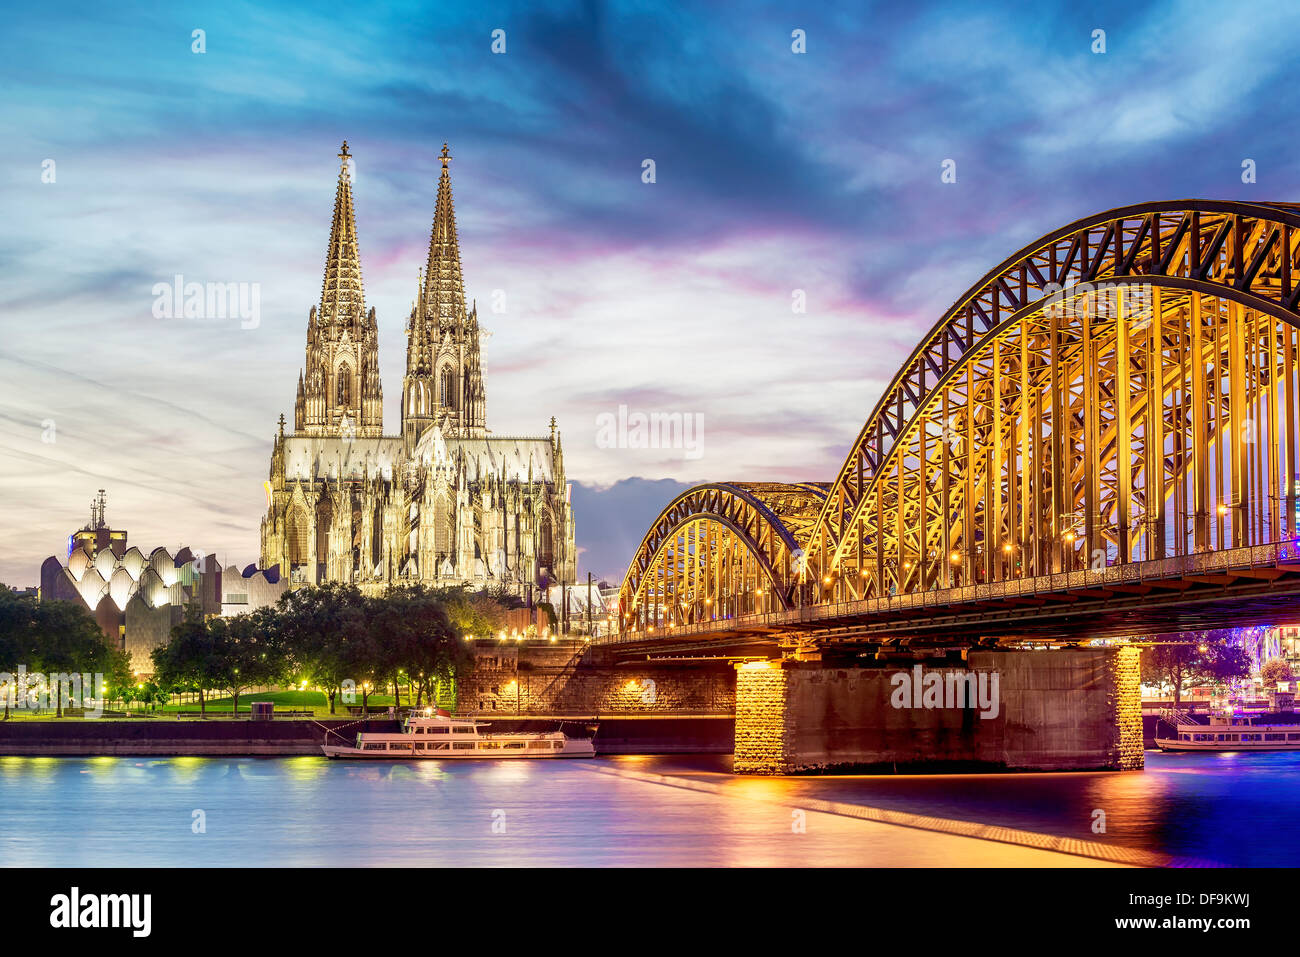 Illuminated Dom in Cologne with bridge and rhine at sunset - Stock Image